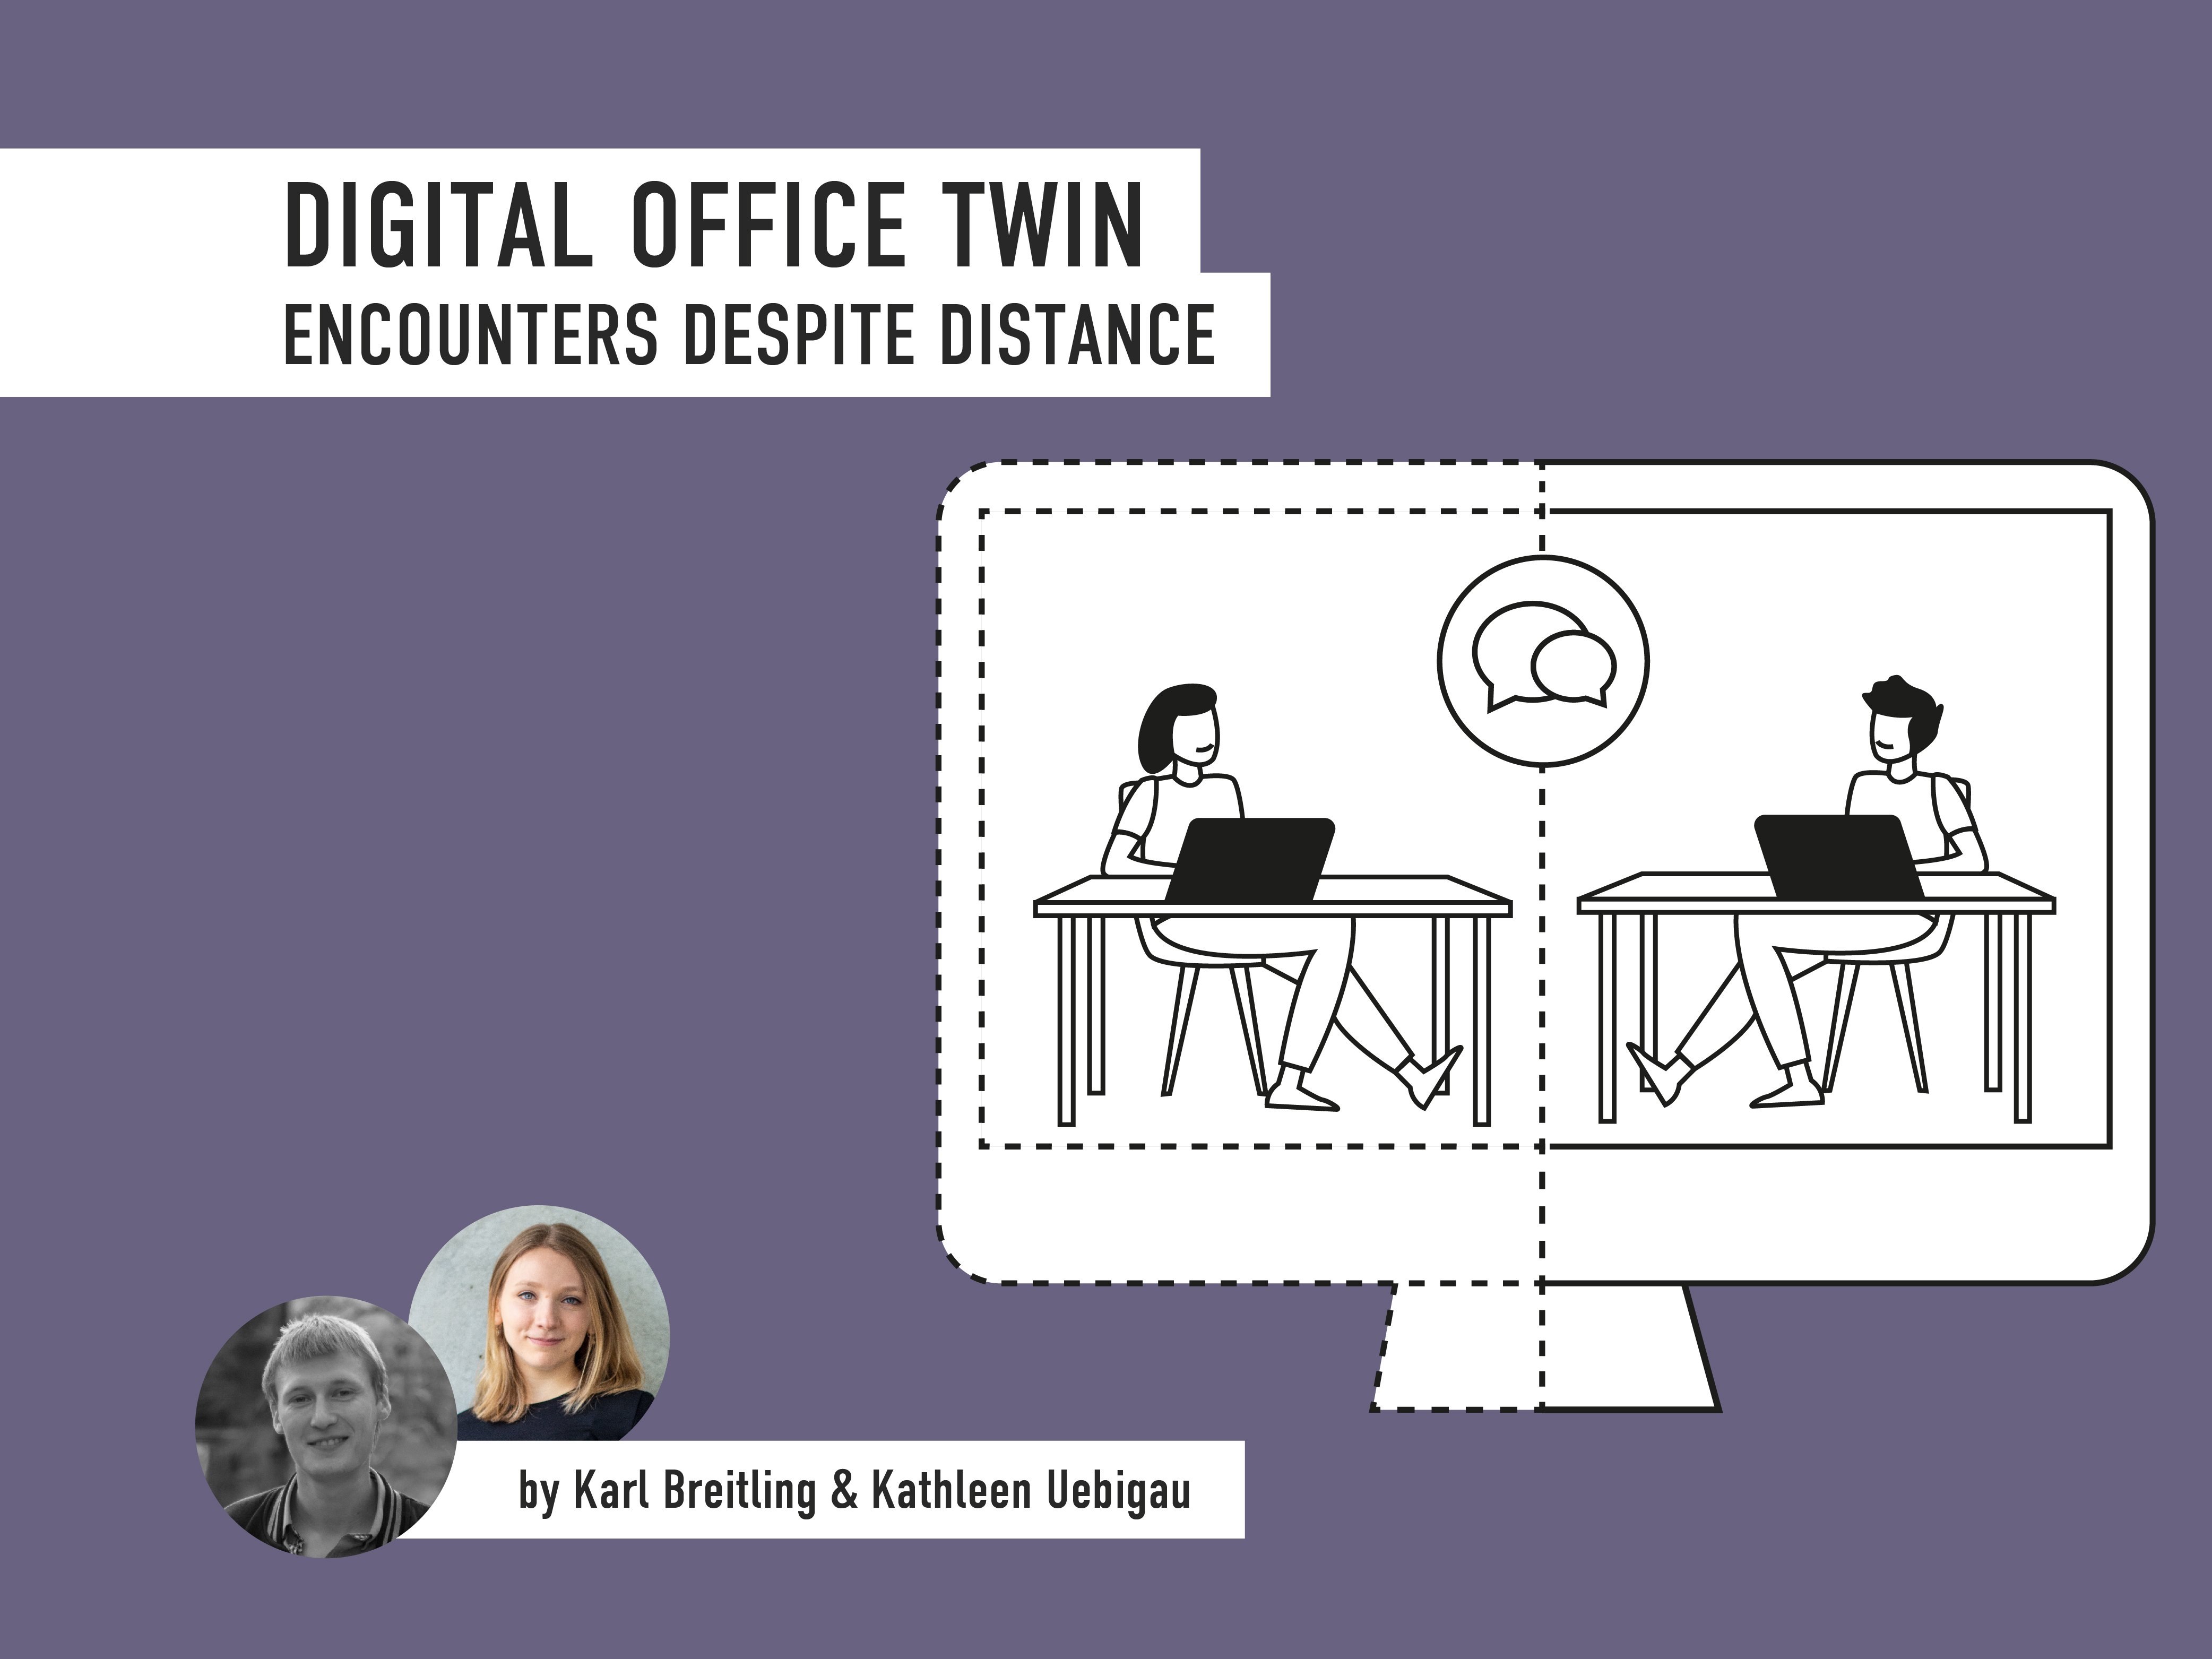 Pollux - The Digital Office Twin